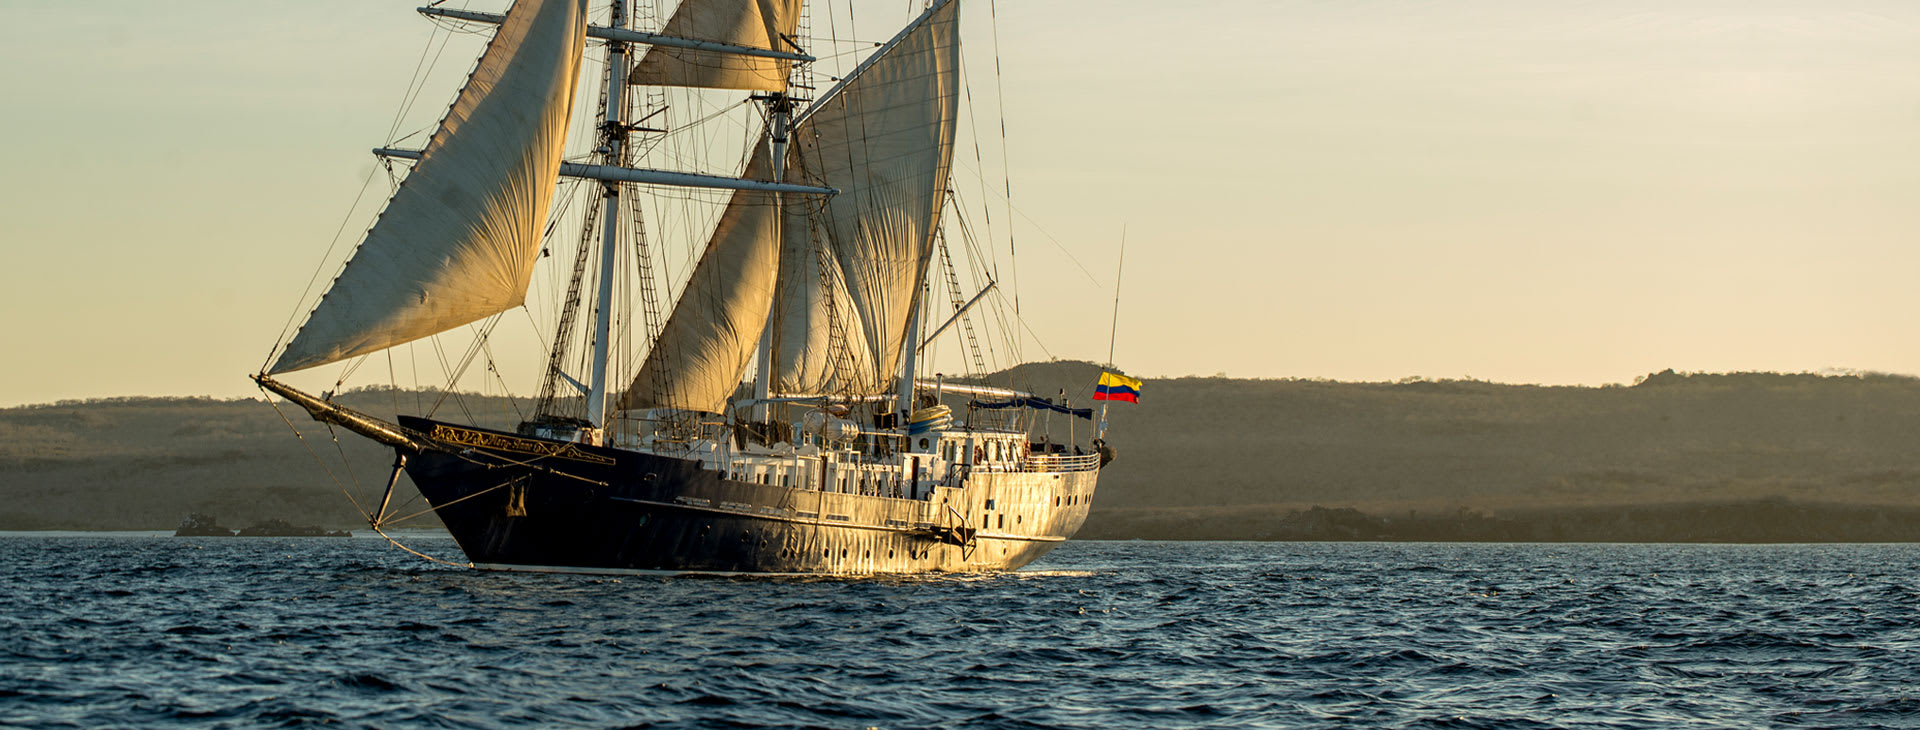 Ship with sail raised in the sunset light